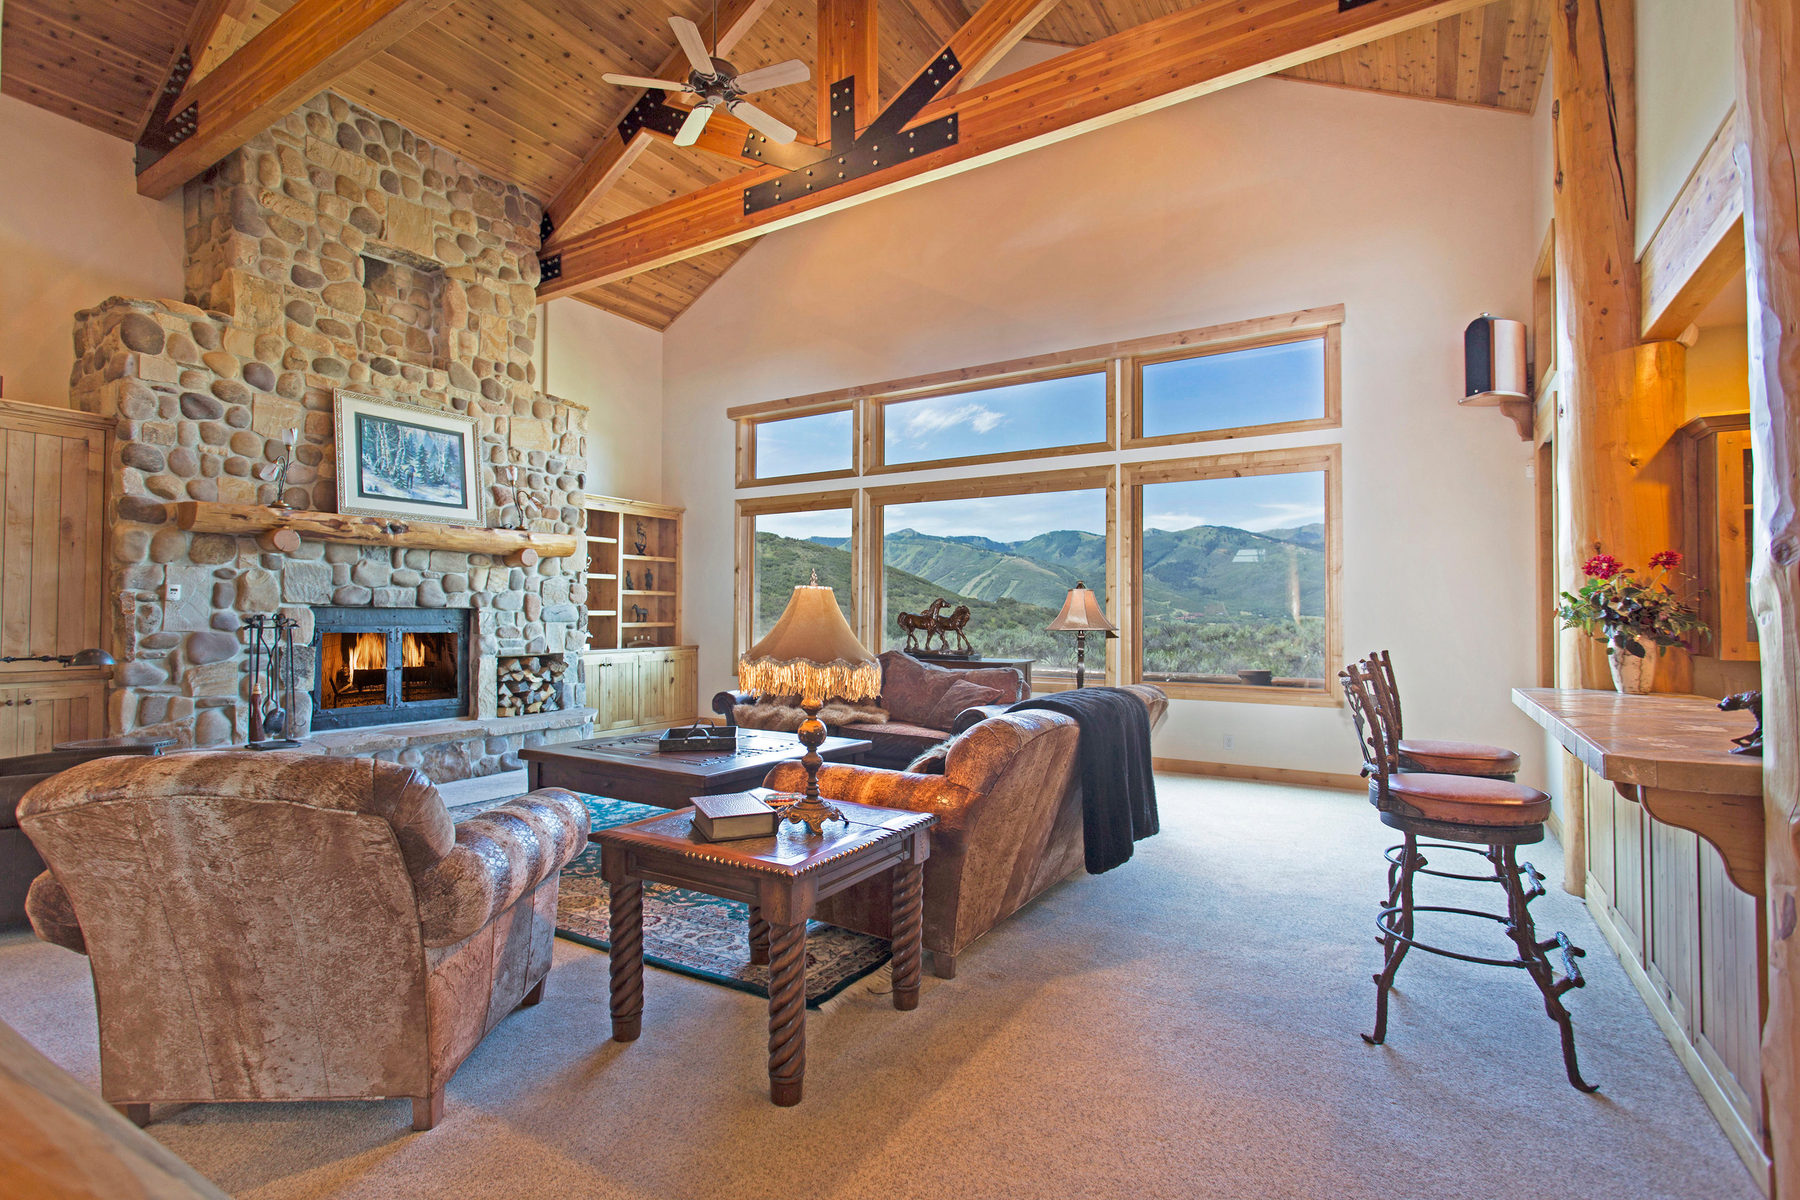 Single Family Home for Sale at Park Meadows Home with Rare Privacy and Great Views 2705 Silver Cloud Dr Park City, Utah 84060 United States